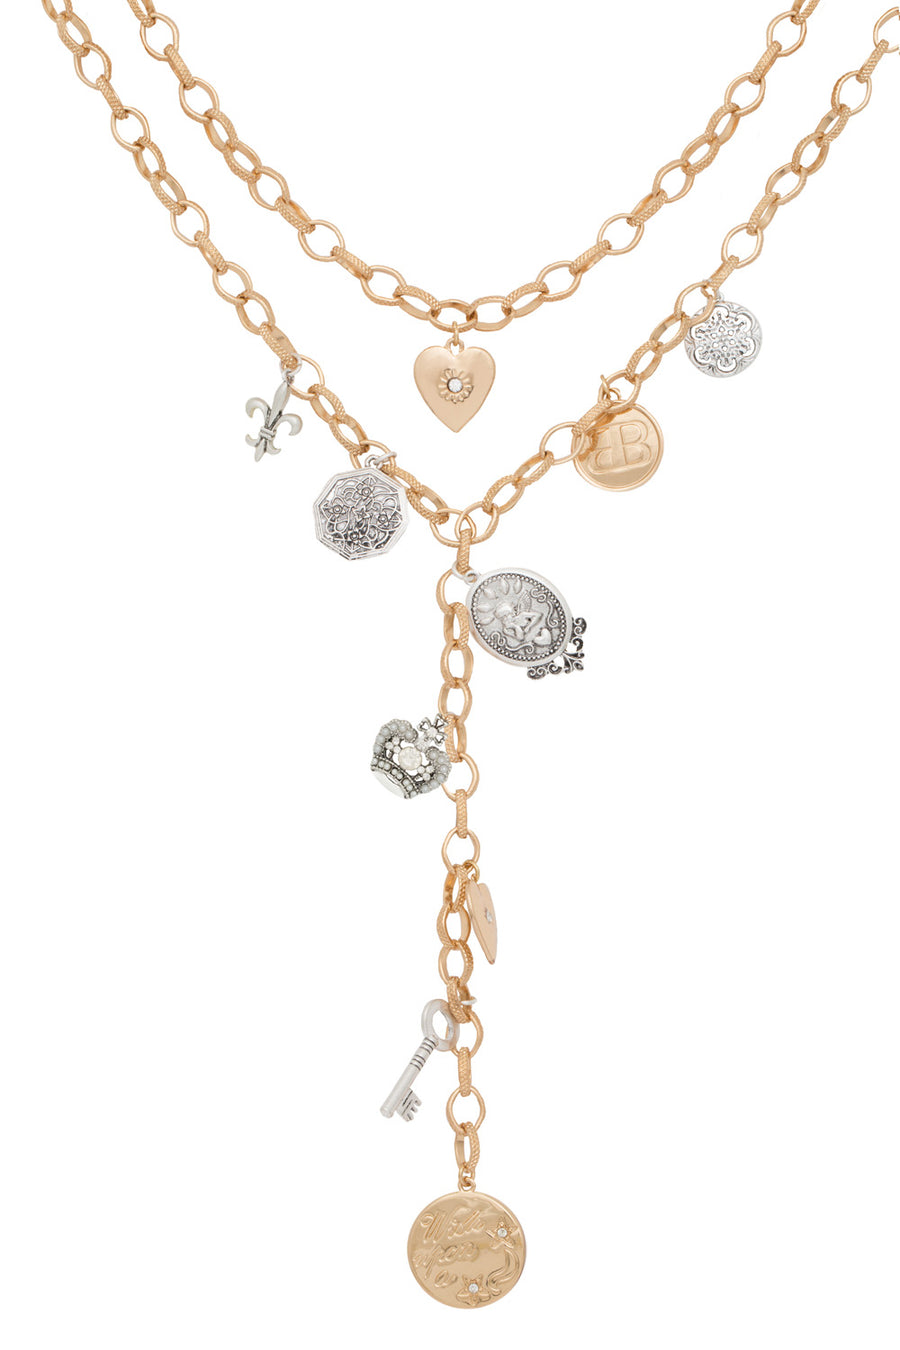 Suzanne Chunky Layered Heritage Necklace